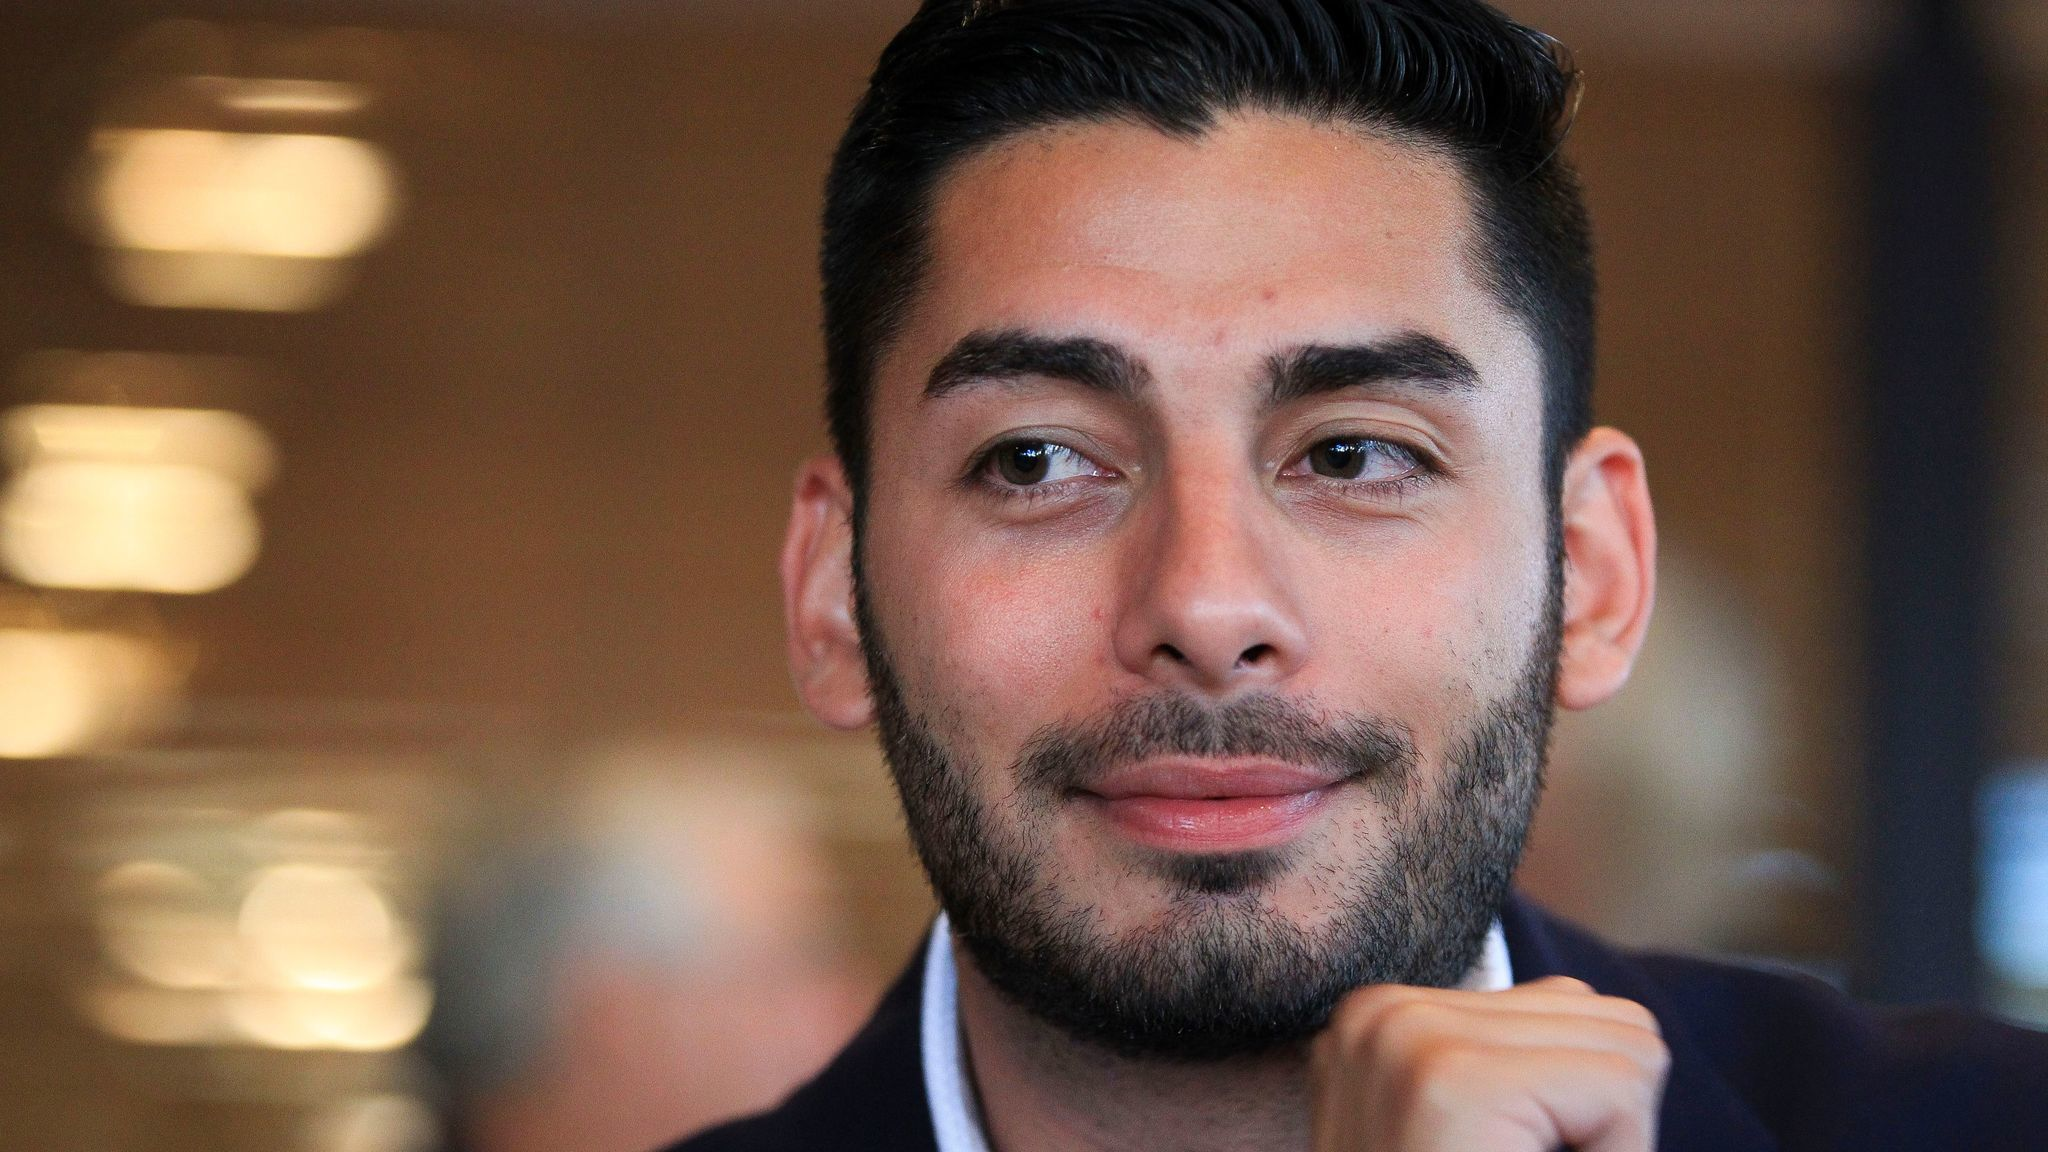 Ammar Campa-Najjar is trying to oust Republican Rep. Duncan Hunter in San Diego County.